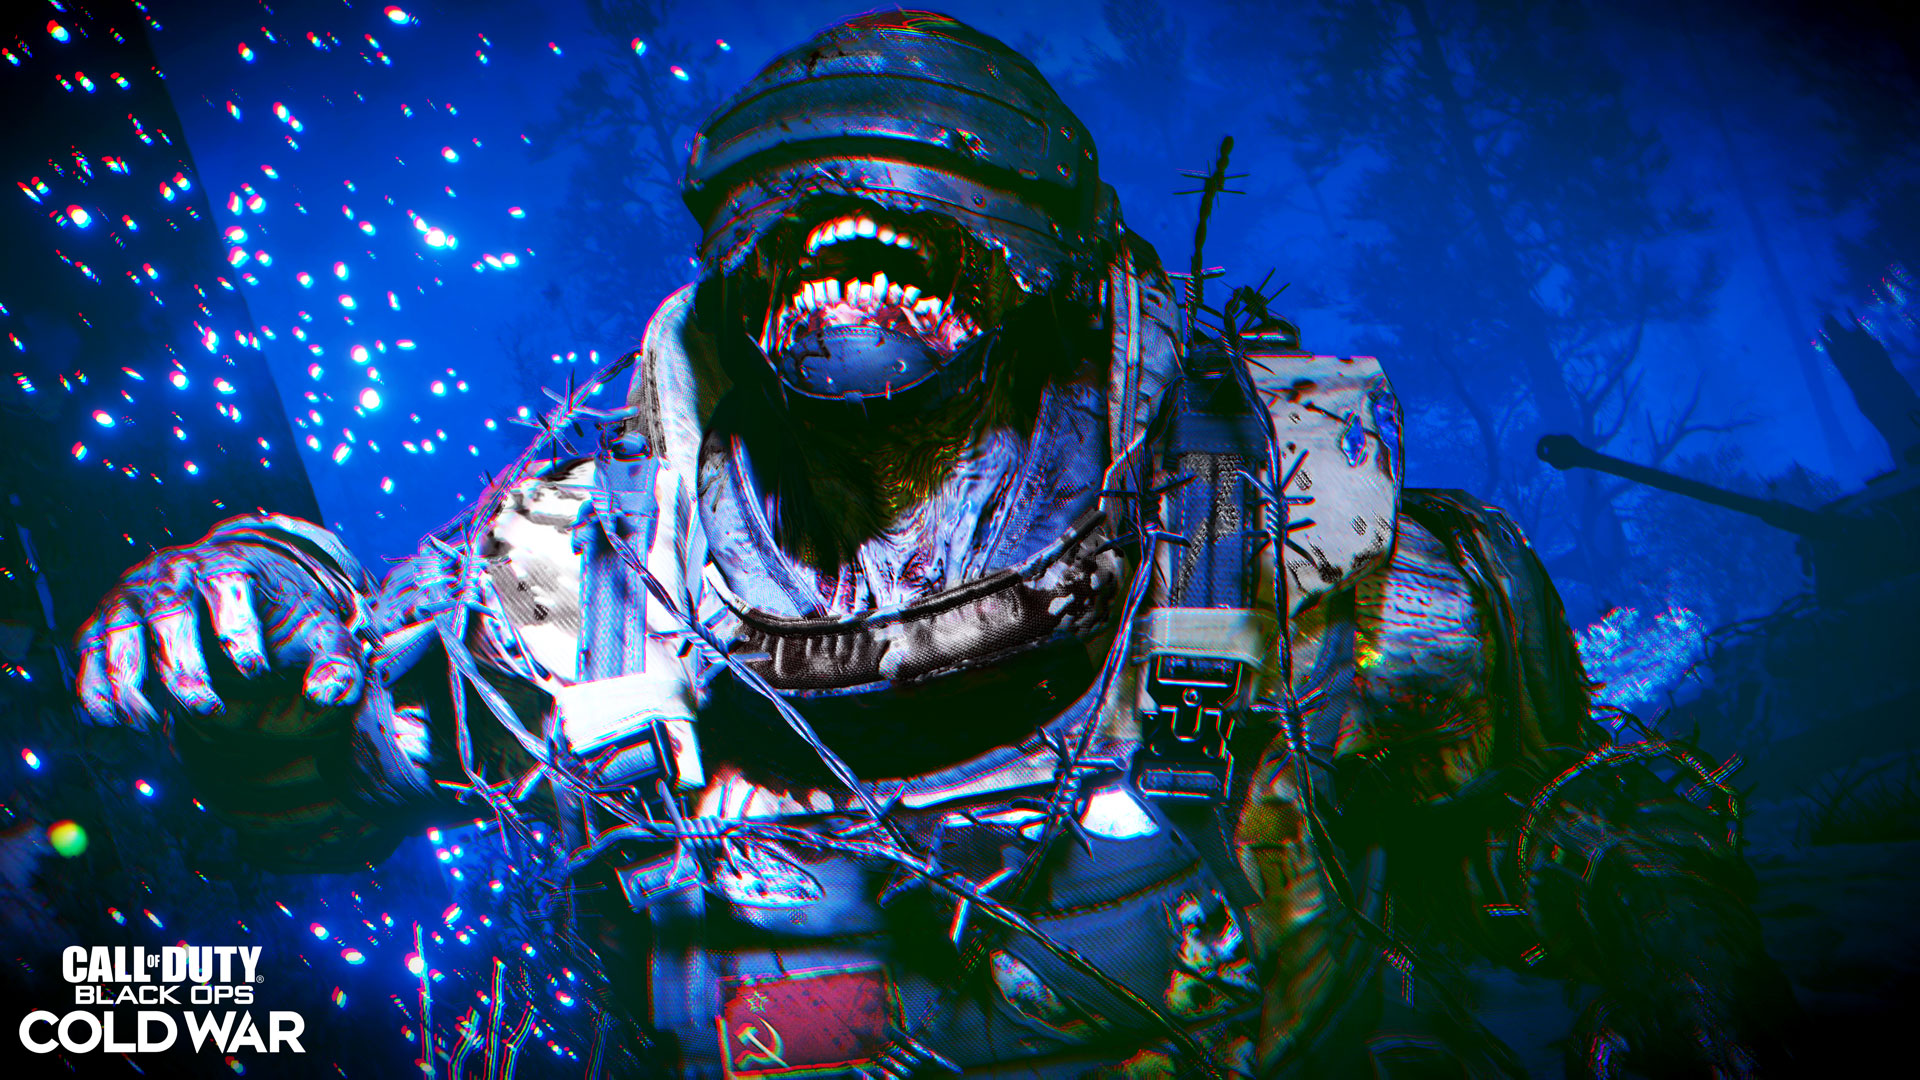 Call Of Duty Black Ops Cold War Zombies Features New Ways To Progress Classic Perks And Cold War Weapons